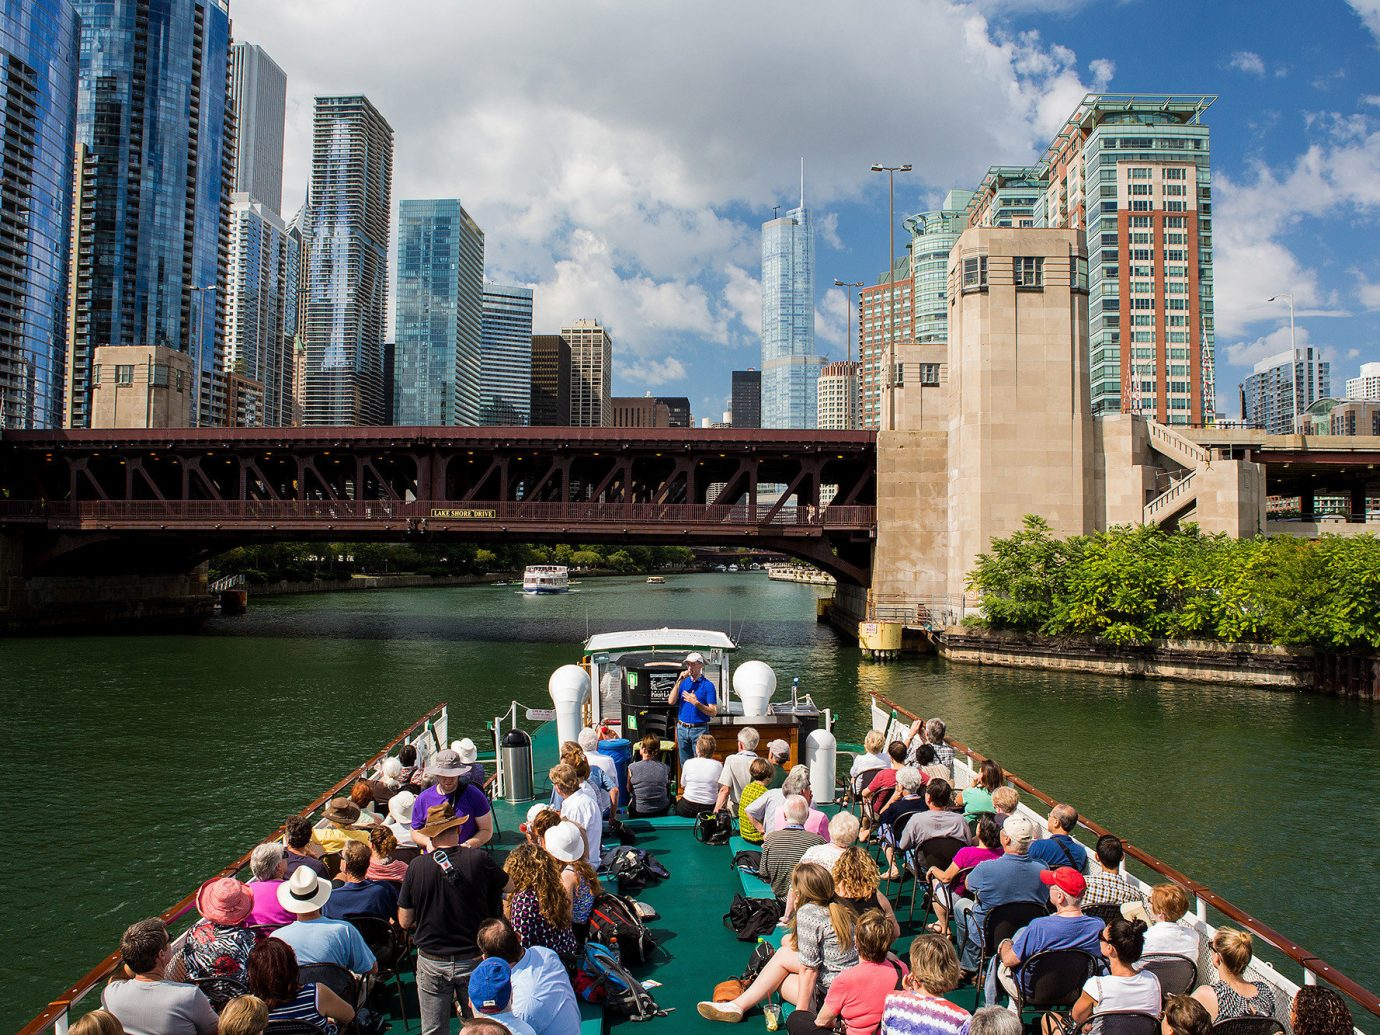 Offbeat water outdoor River Boat scene City vehicle tourism people waterway boating Canal cityscape watercraft skyline tours bridge group travel Lake crowd